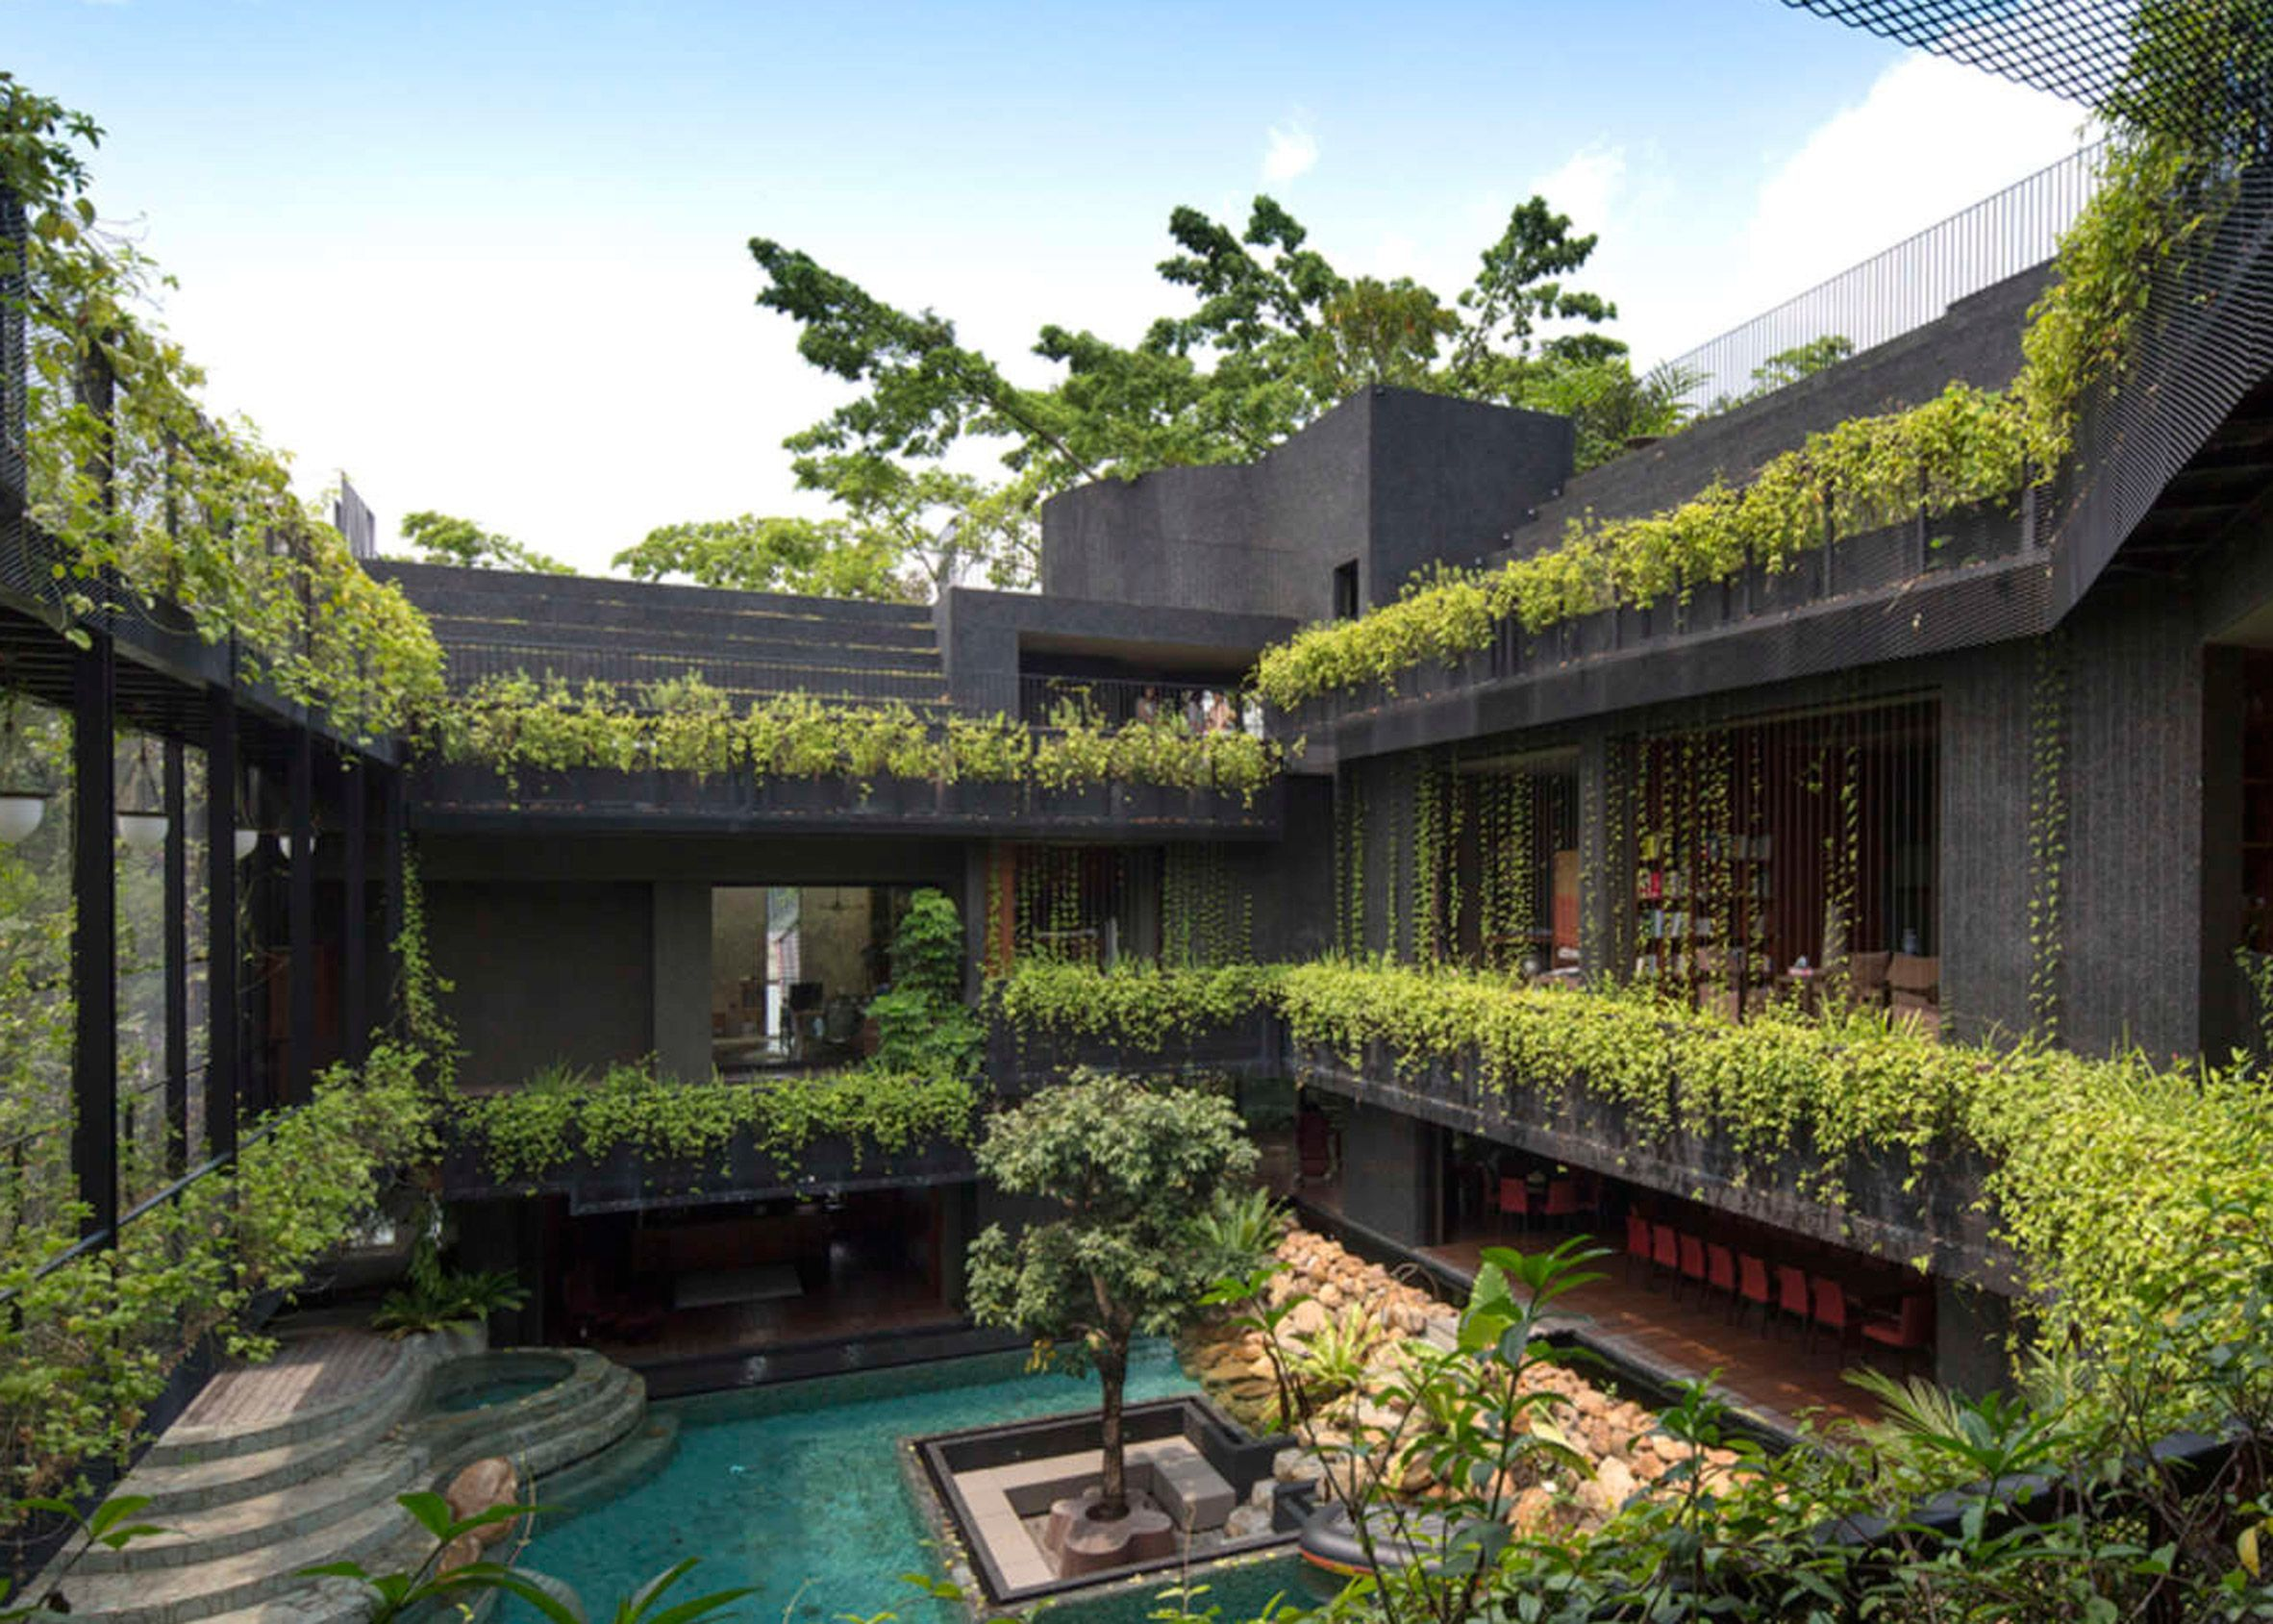 10 roof gardens from Dezeens Pinterest boards that each provide an oasis  Weve rounded up 10 of the best rooftop gardens from an oasis on top of a Sydney penthouse to a